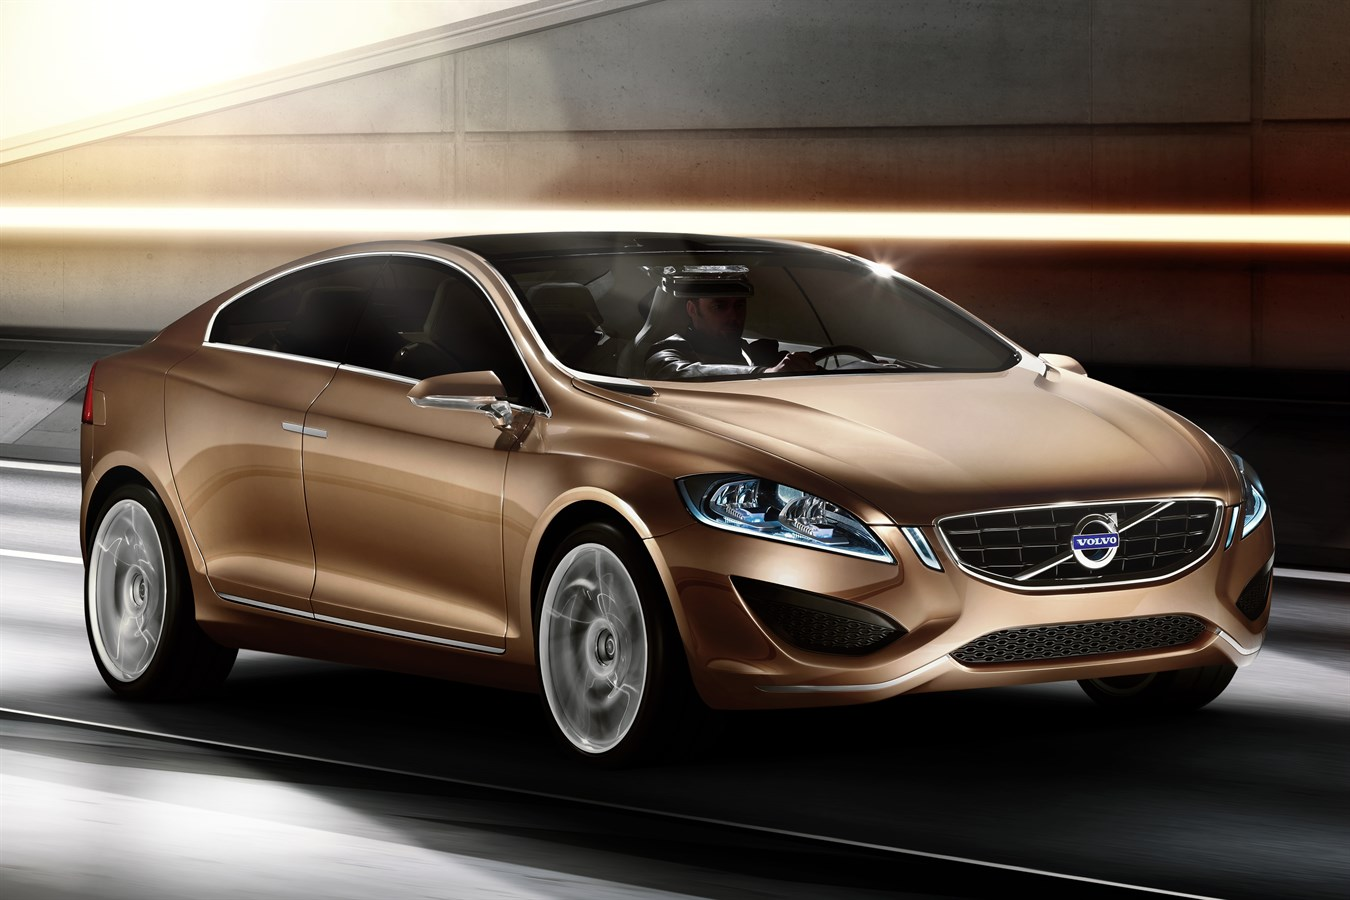 hight resolution of the volvo s60 concept a glimpse of the next generation volvo s60 volvo car